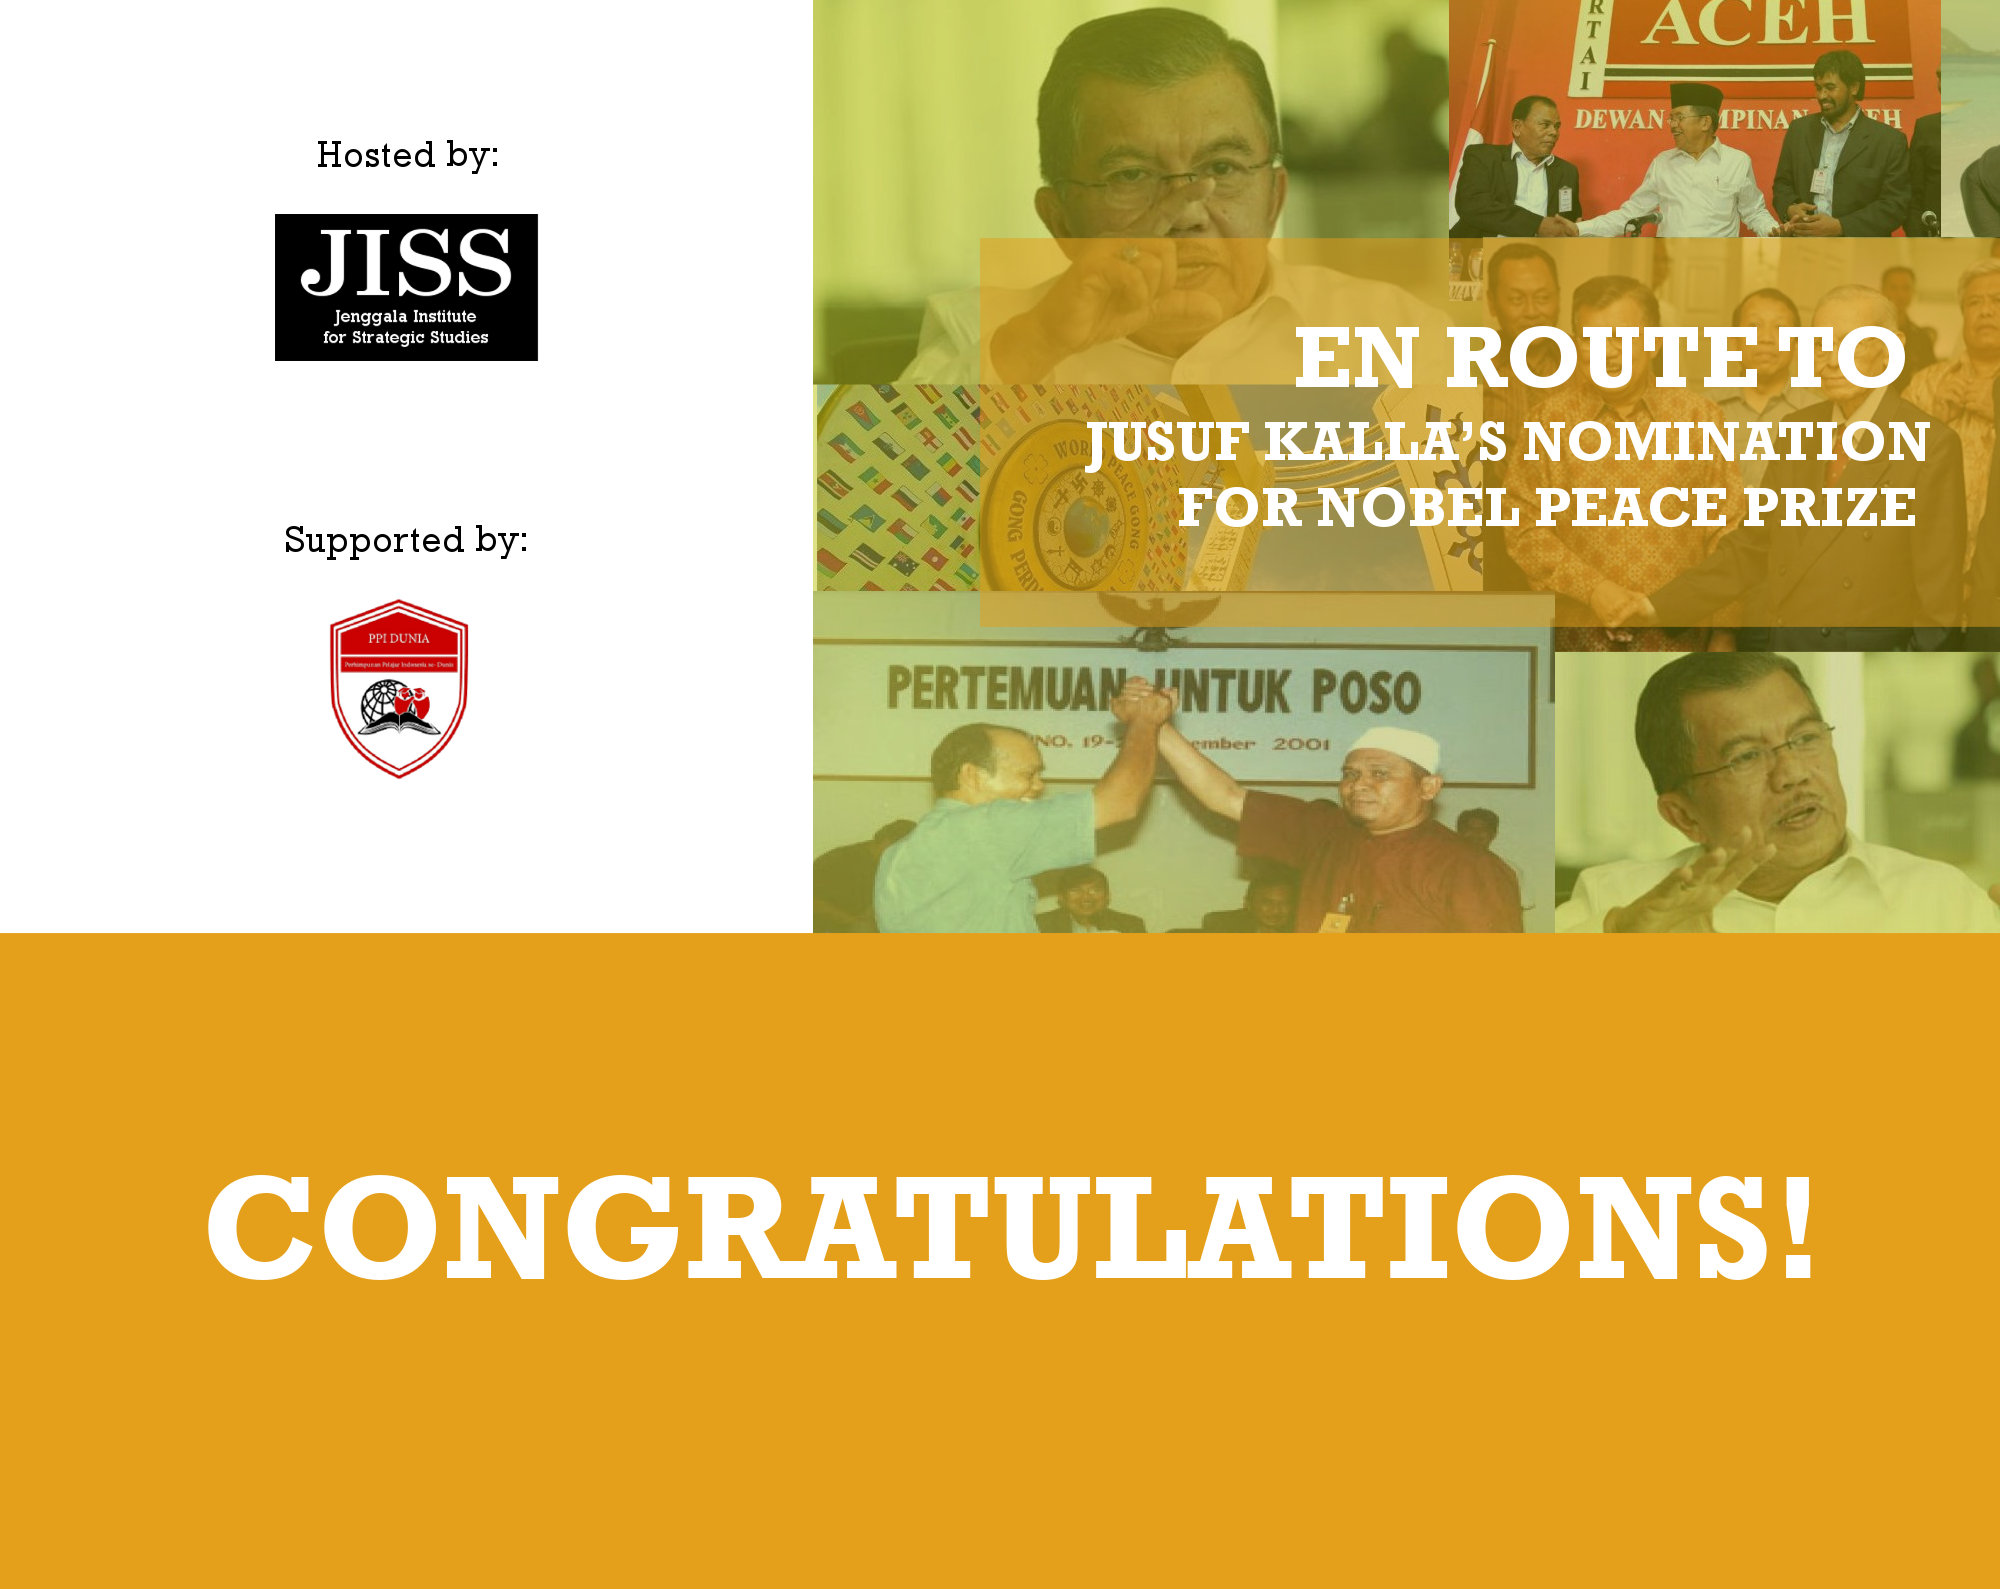 press release  best essays selected to celebrate peacemaking a la  press release  best essays selected to celebrate peacemaking a la jusuf  kalla  jenggala institute for strategic studies